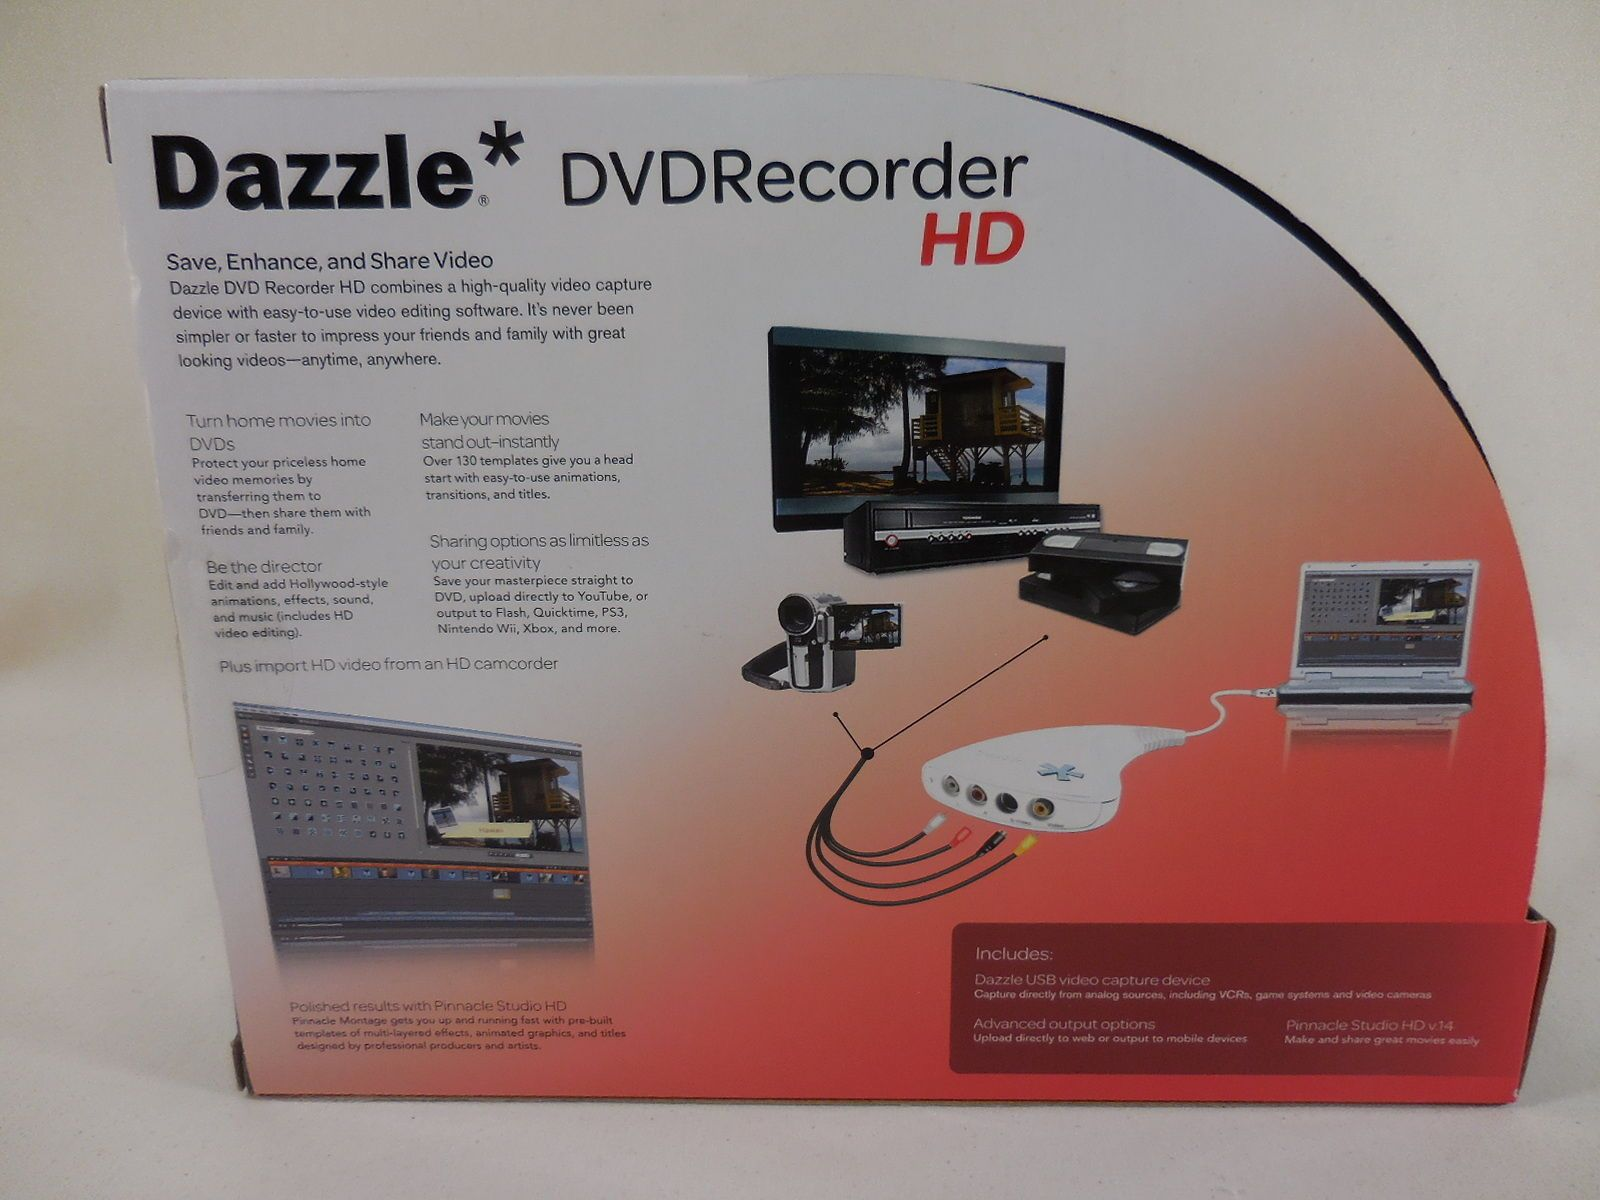 dazzle dvd recorder hd convert from vhs to dvd. Black Bedroom Furniture Sets. Home Design Ideas